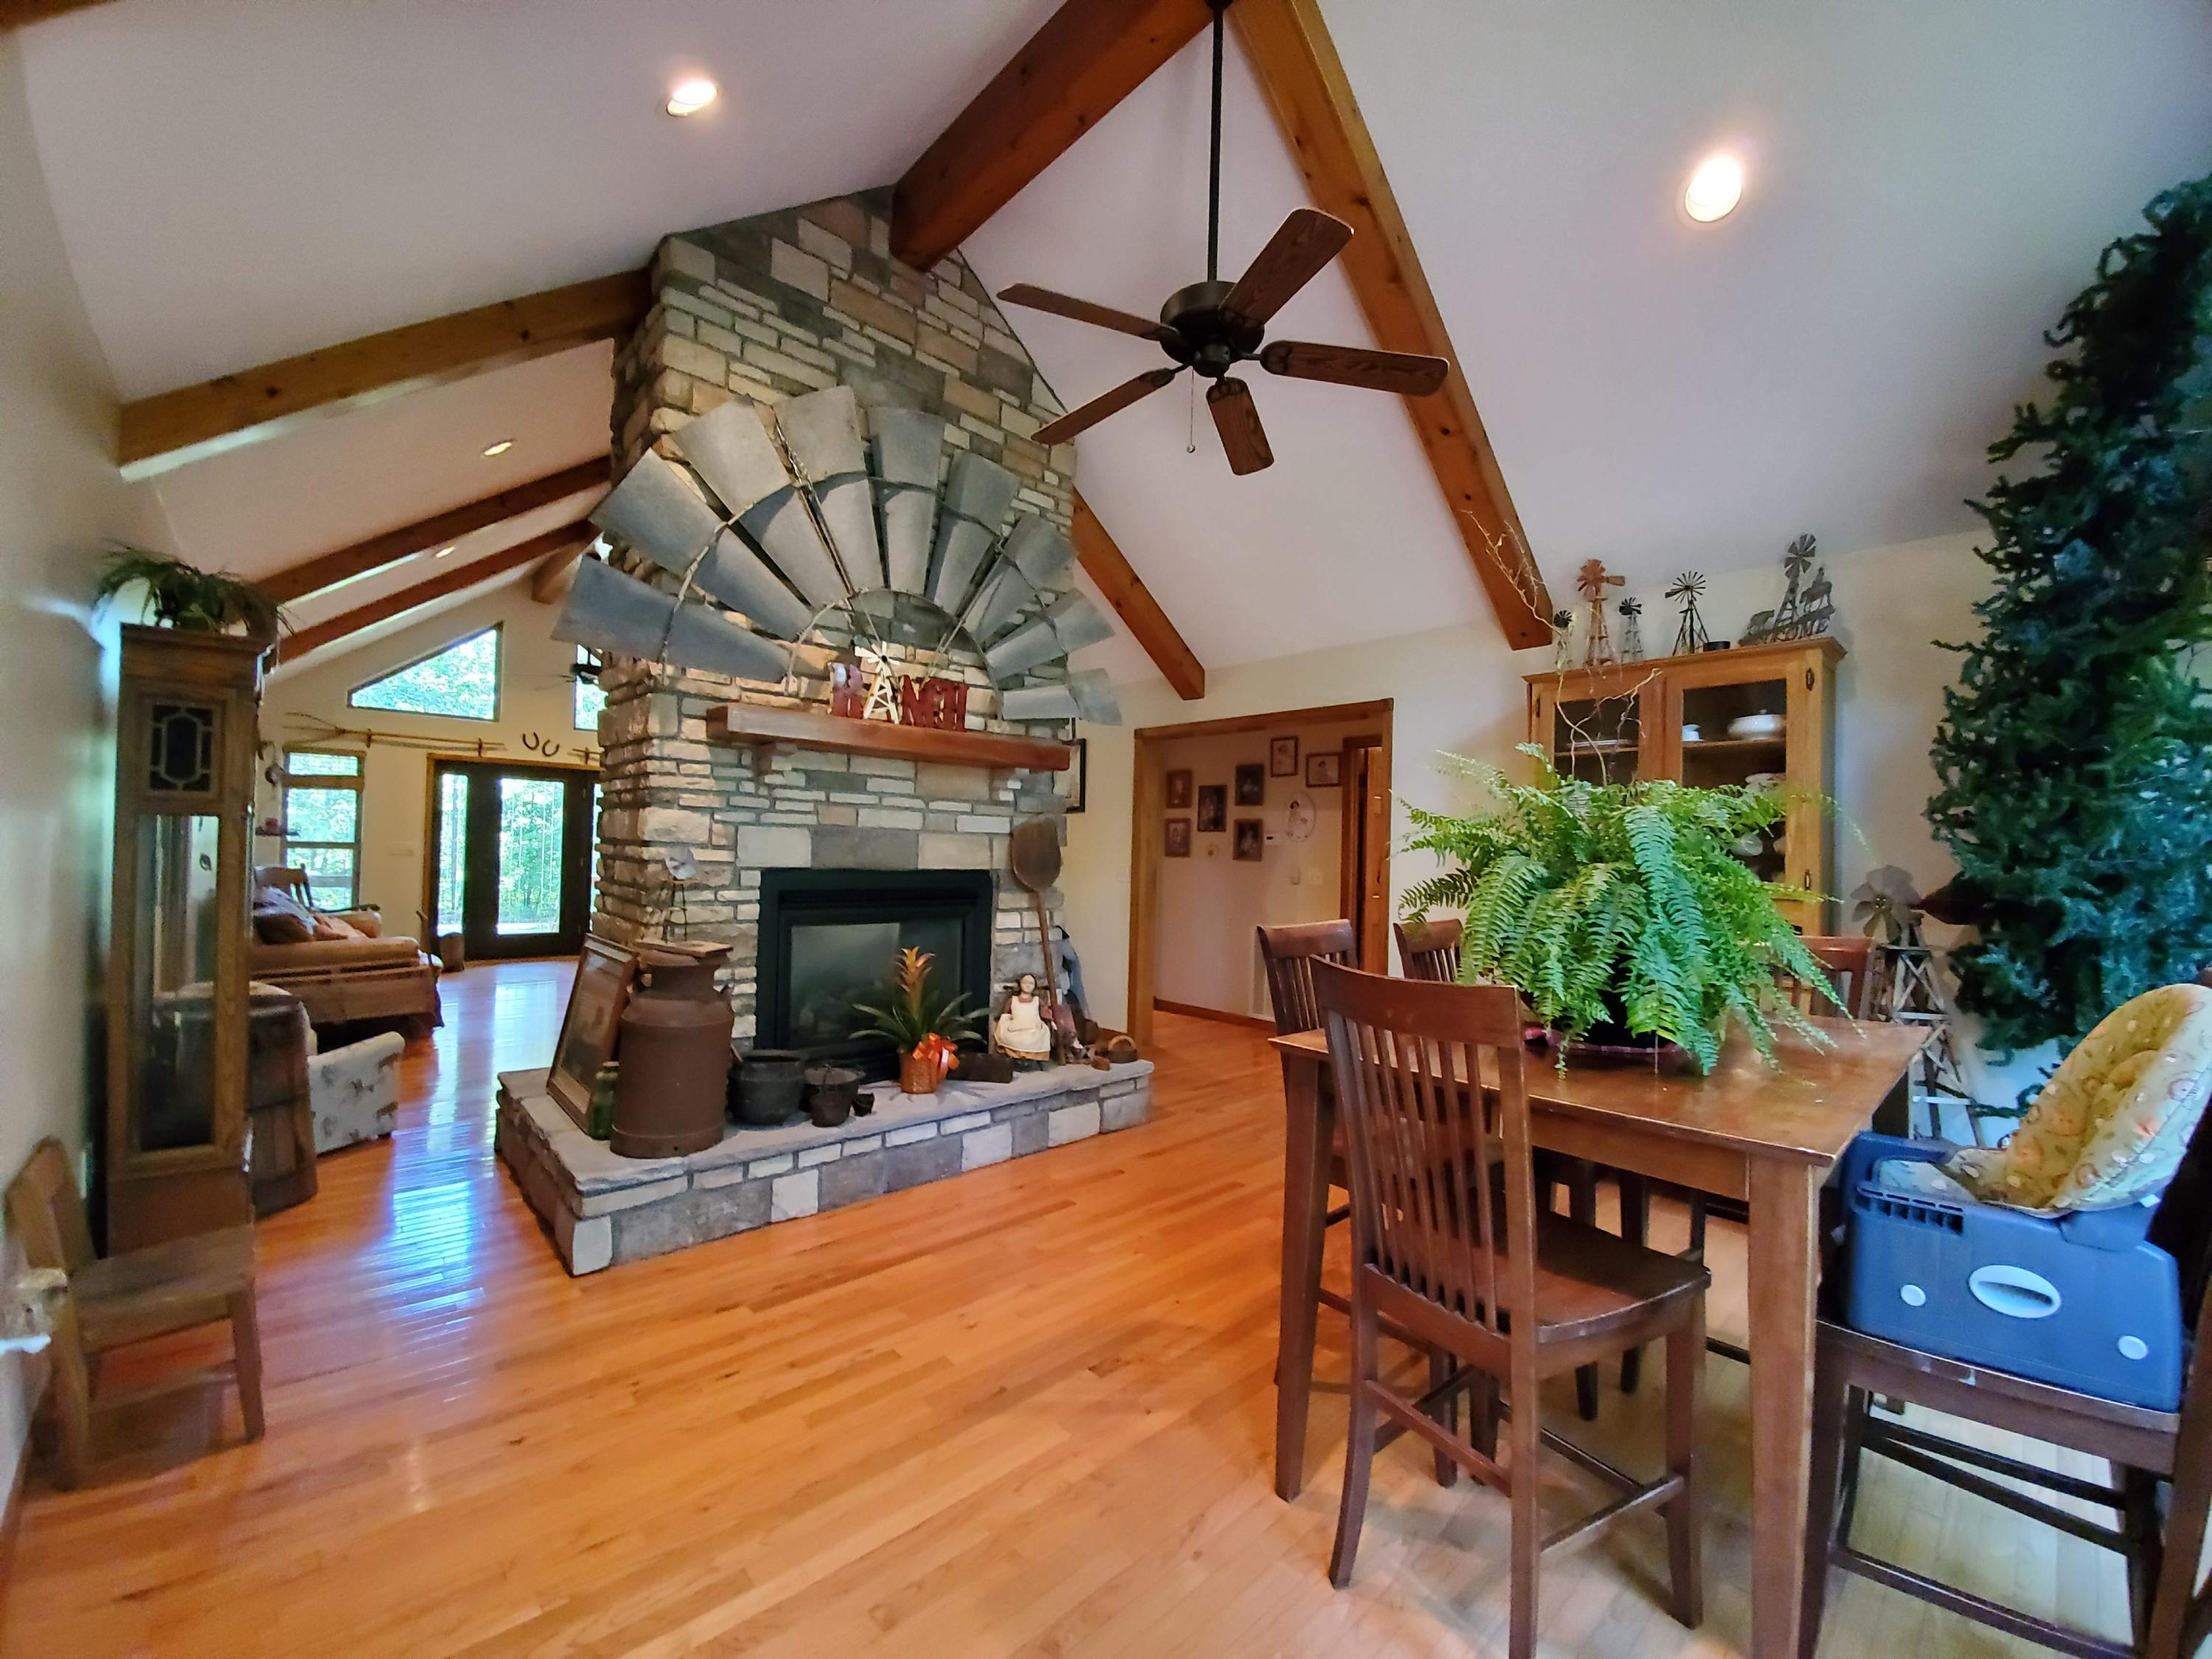 2002 County Road Gainesville, MO 65655